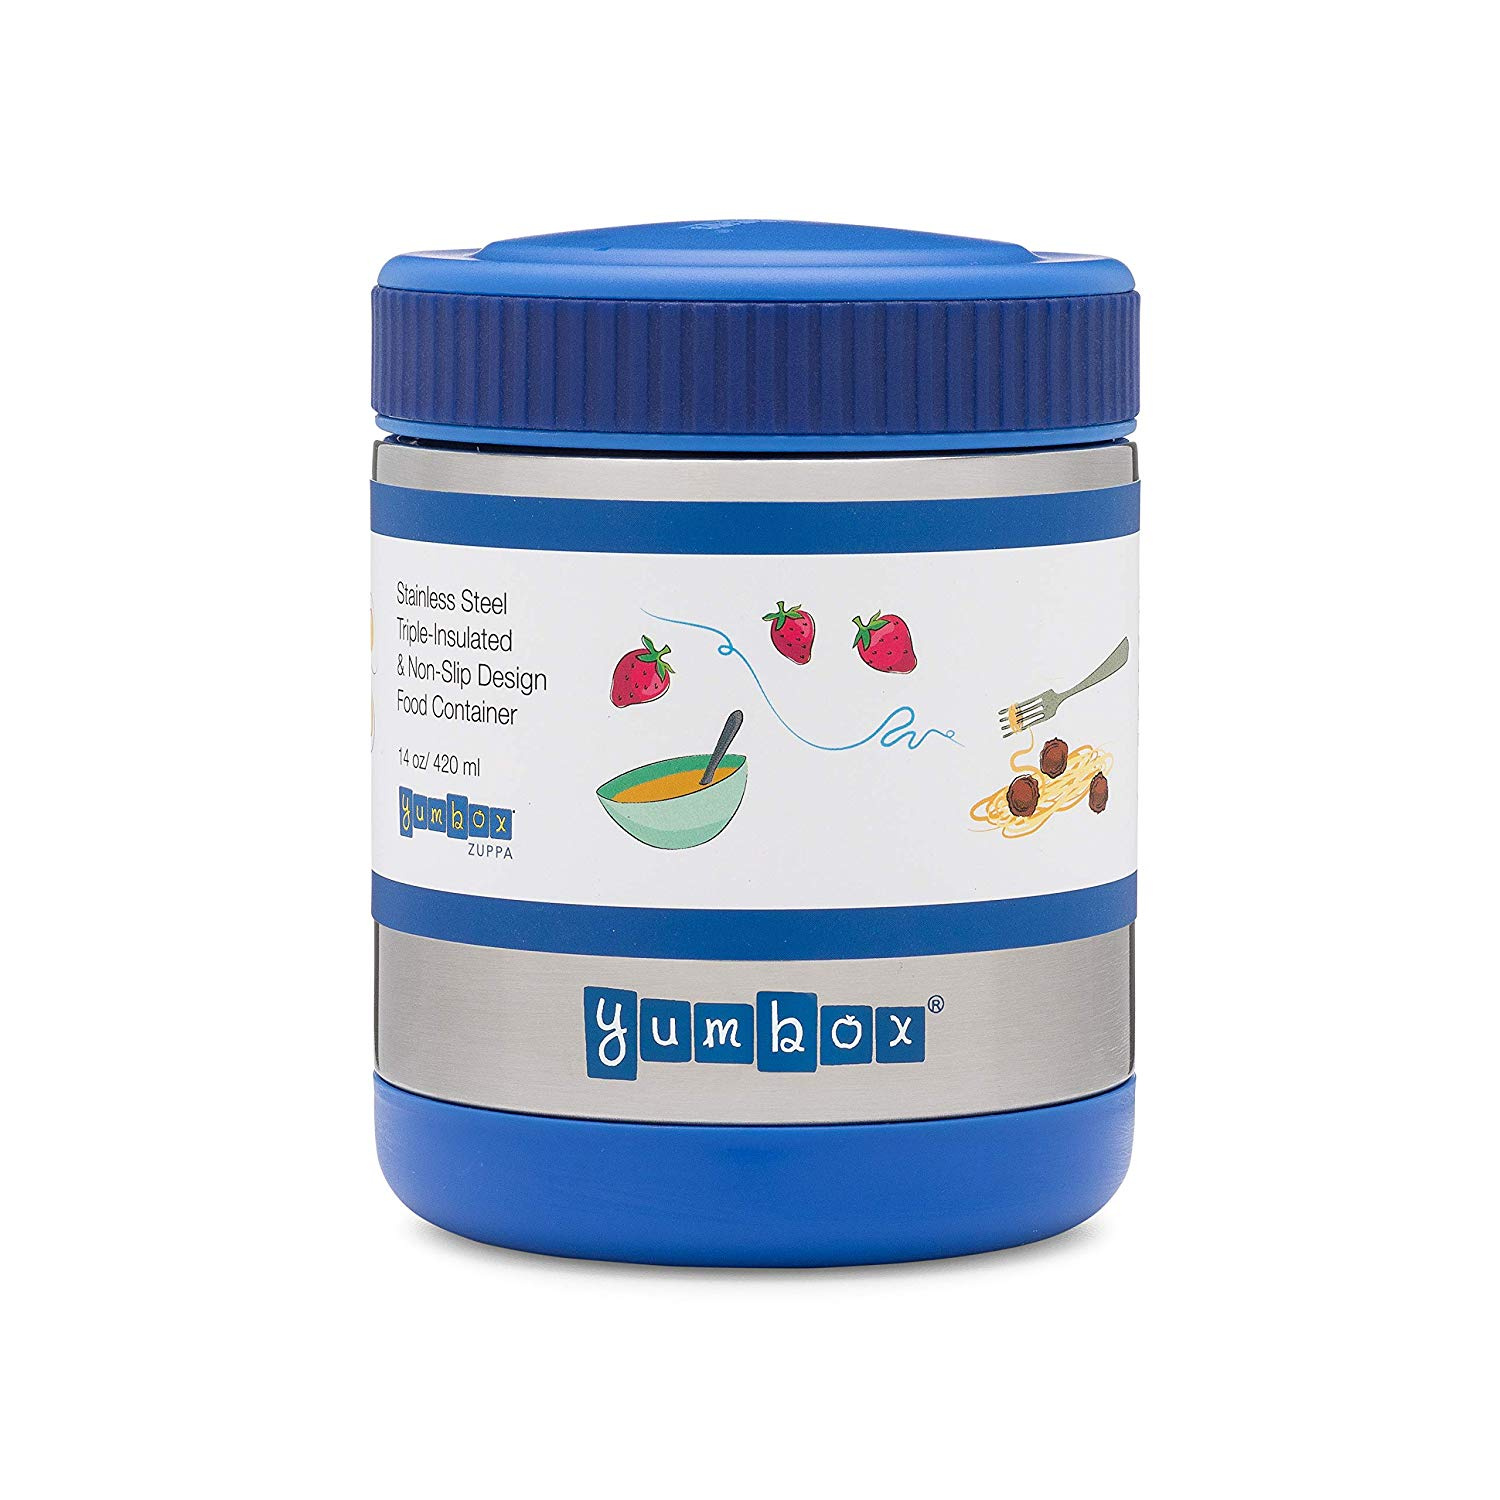 c21caf3936f5 YUMBOX Zuppa - Triple Insulated & Leakproof Thermal Food Jar (410ml or 1.75  cups) in Neptune Blue